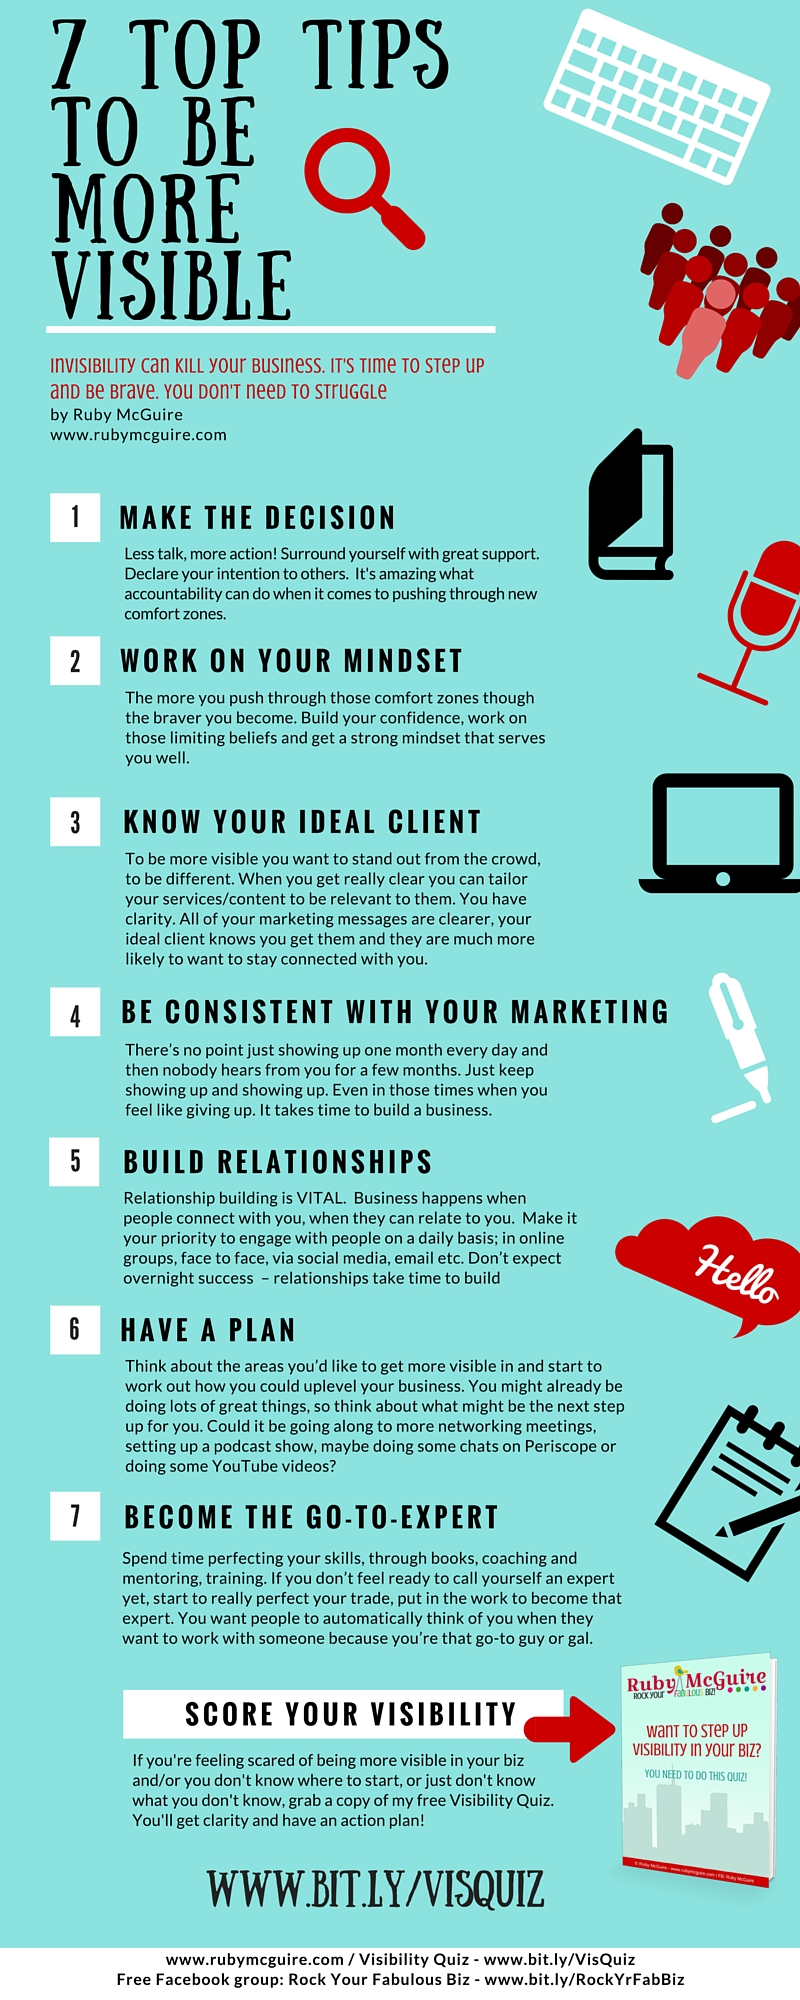 7 TOP TIPS TO BE MORE VISIBLE (1)